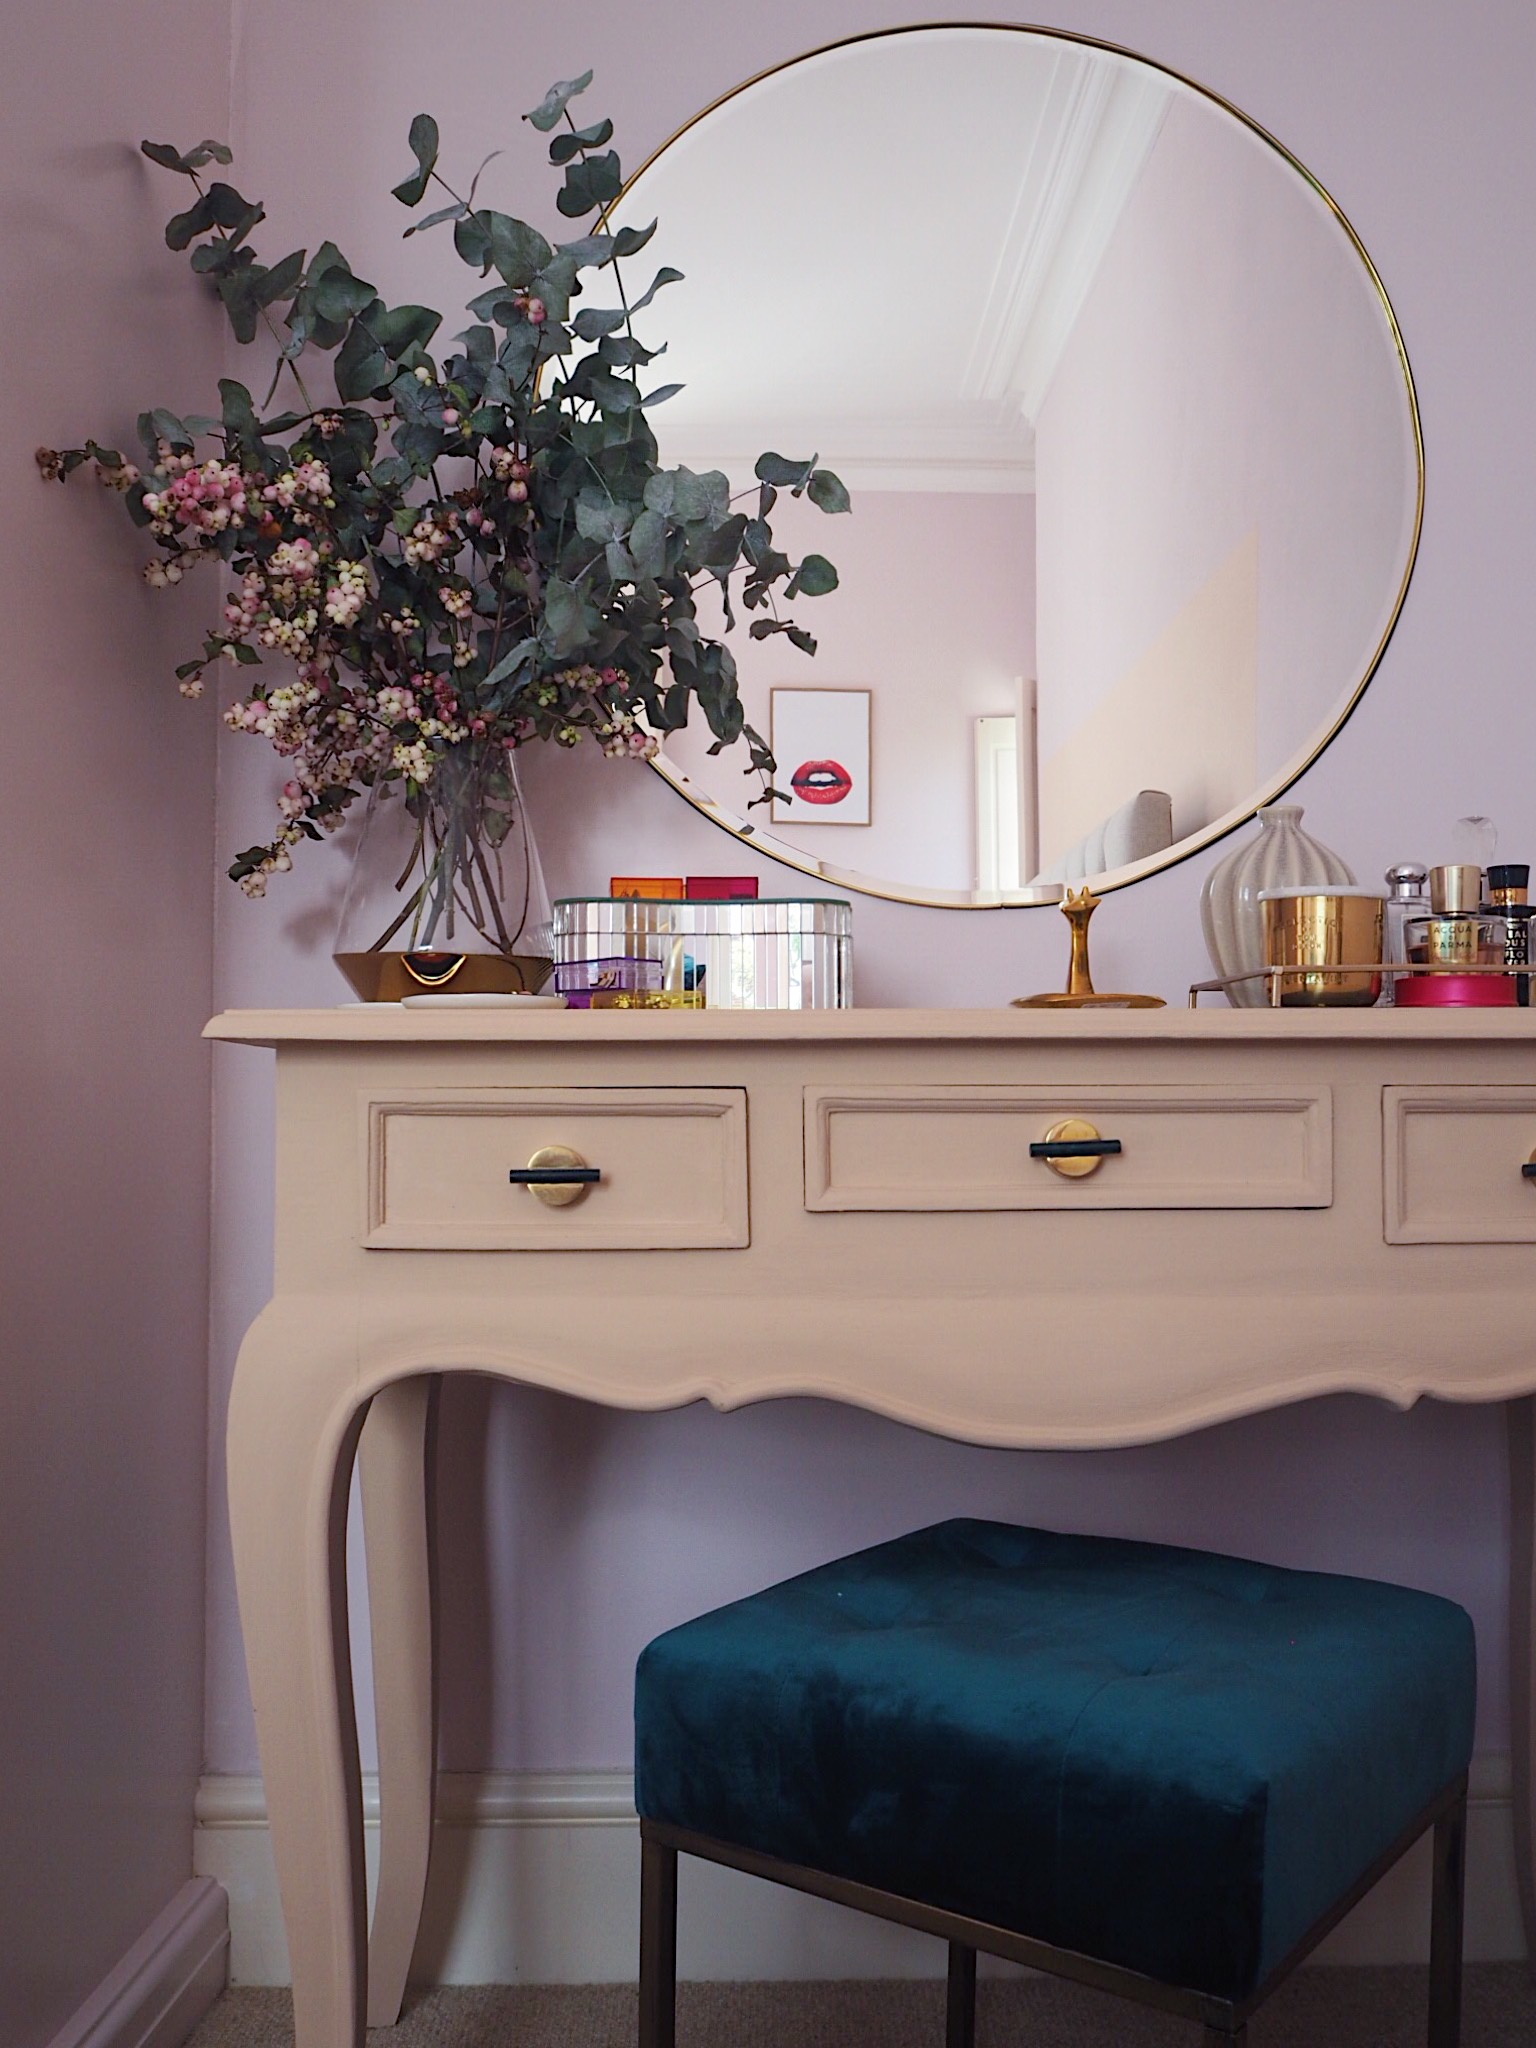 Diy Large Brass Trim Circular Mirror Melanie Lissack Interiors